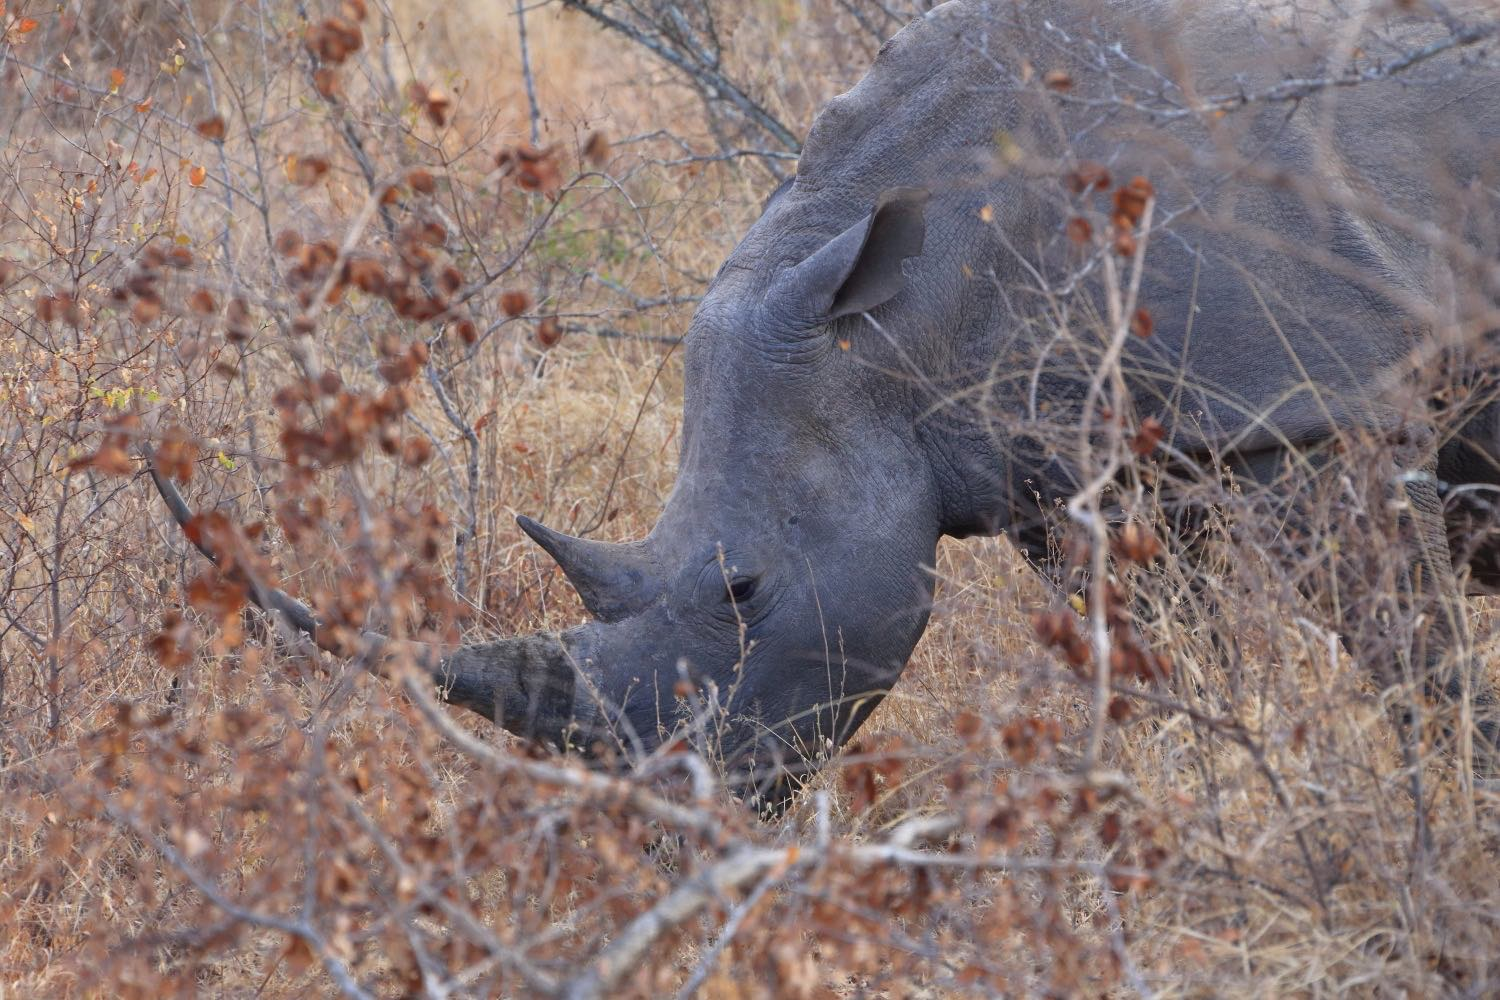 Big Rhino!    Karongwe Private Game Reserve, South Africa. 10 August 2014. 1/160 s, f/9, ISO 1600, 300 mm, EOS 6D + EF 28-300L